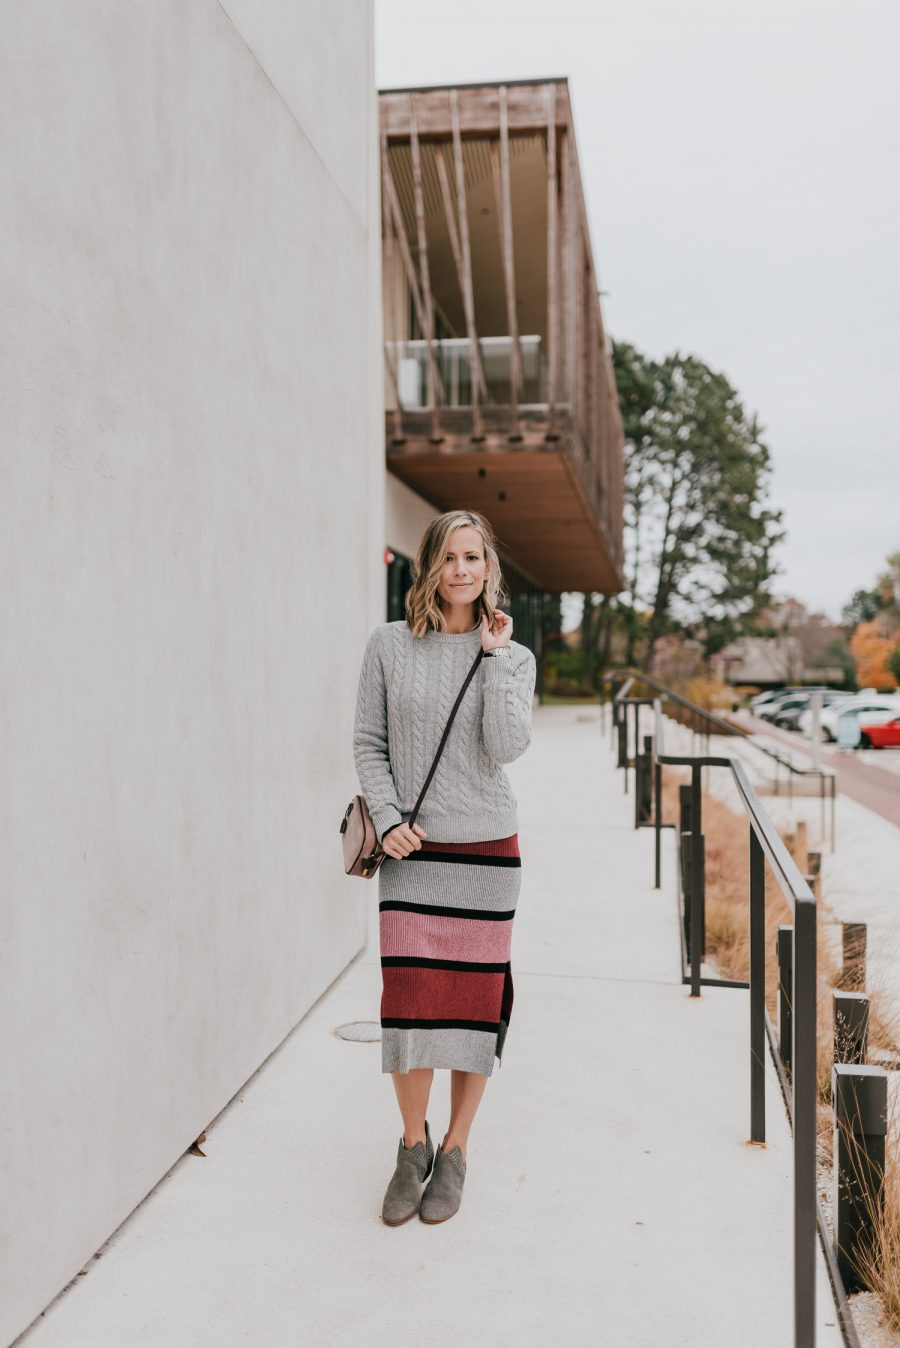 Thanksgiving outfit ideas--Sweater midi dress layered with a sweater and booties